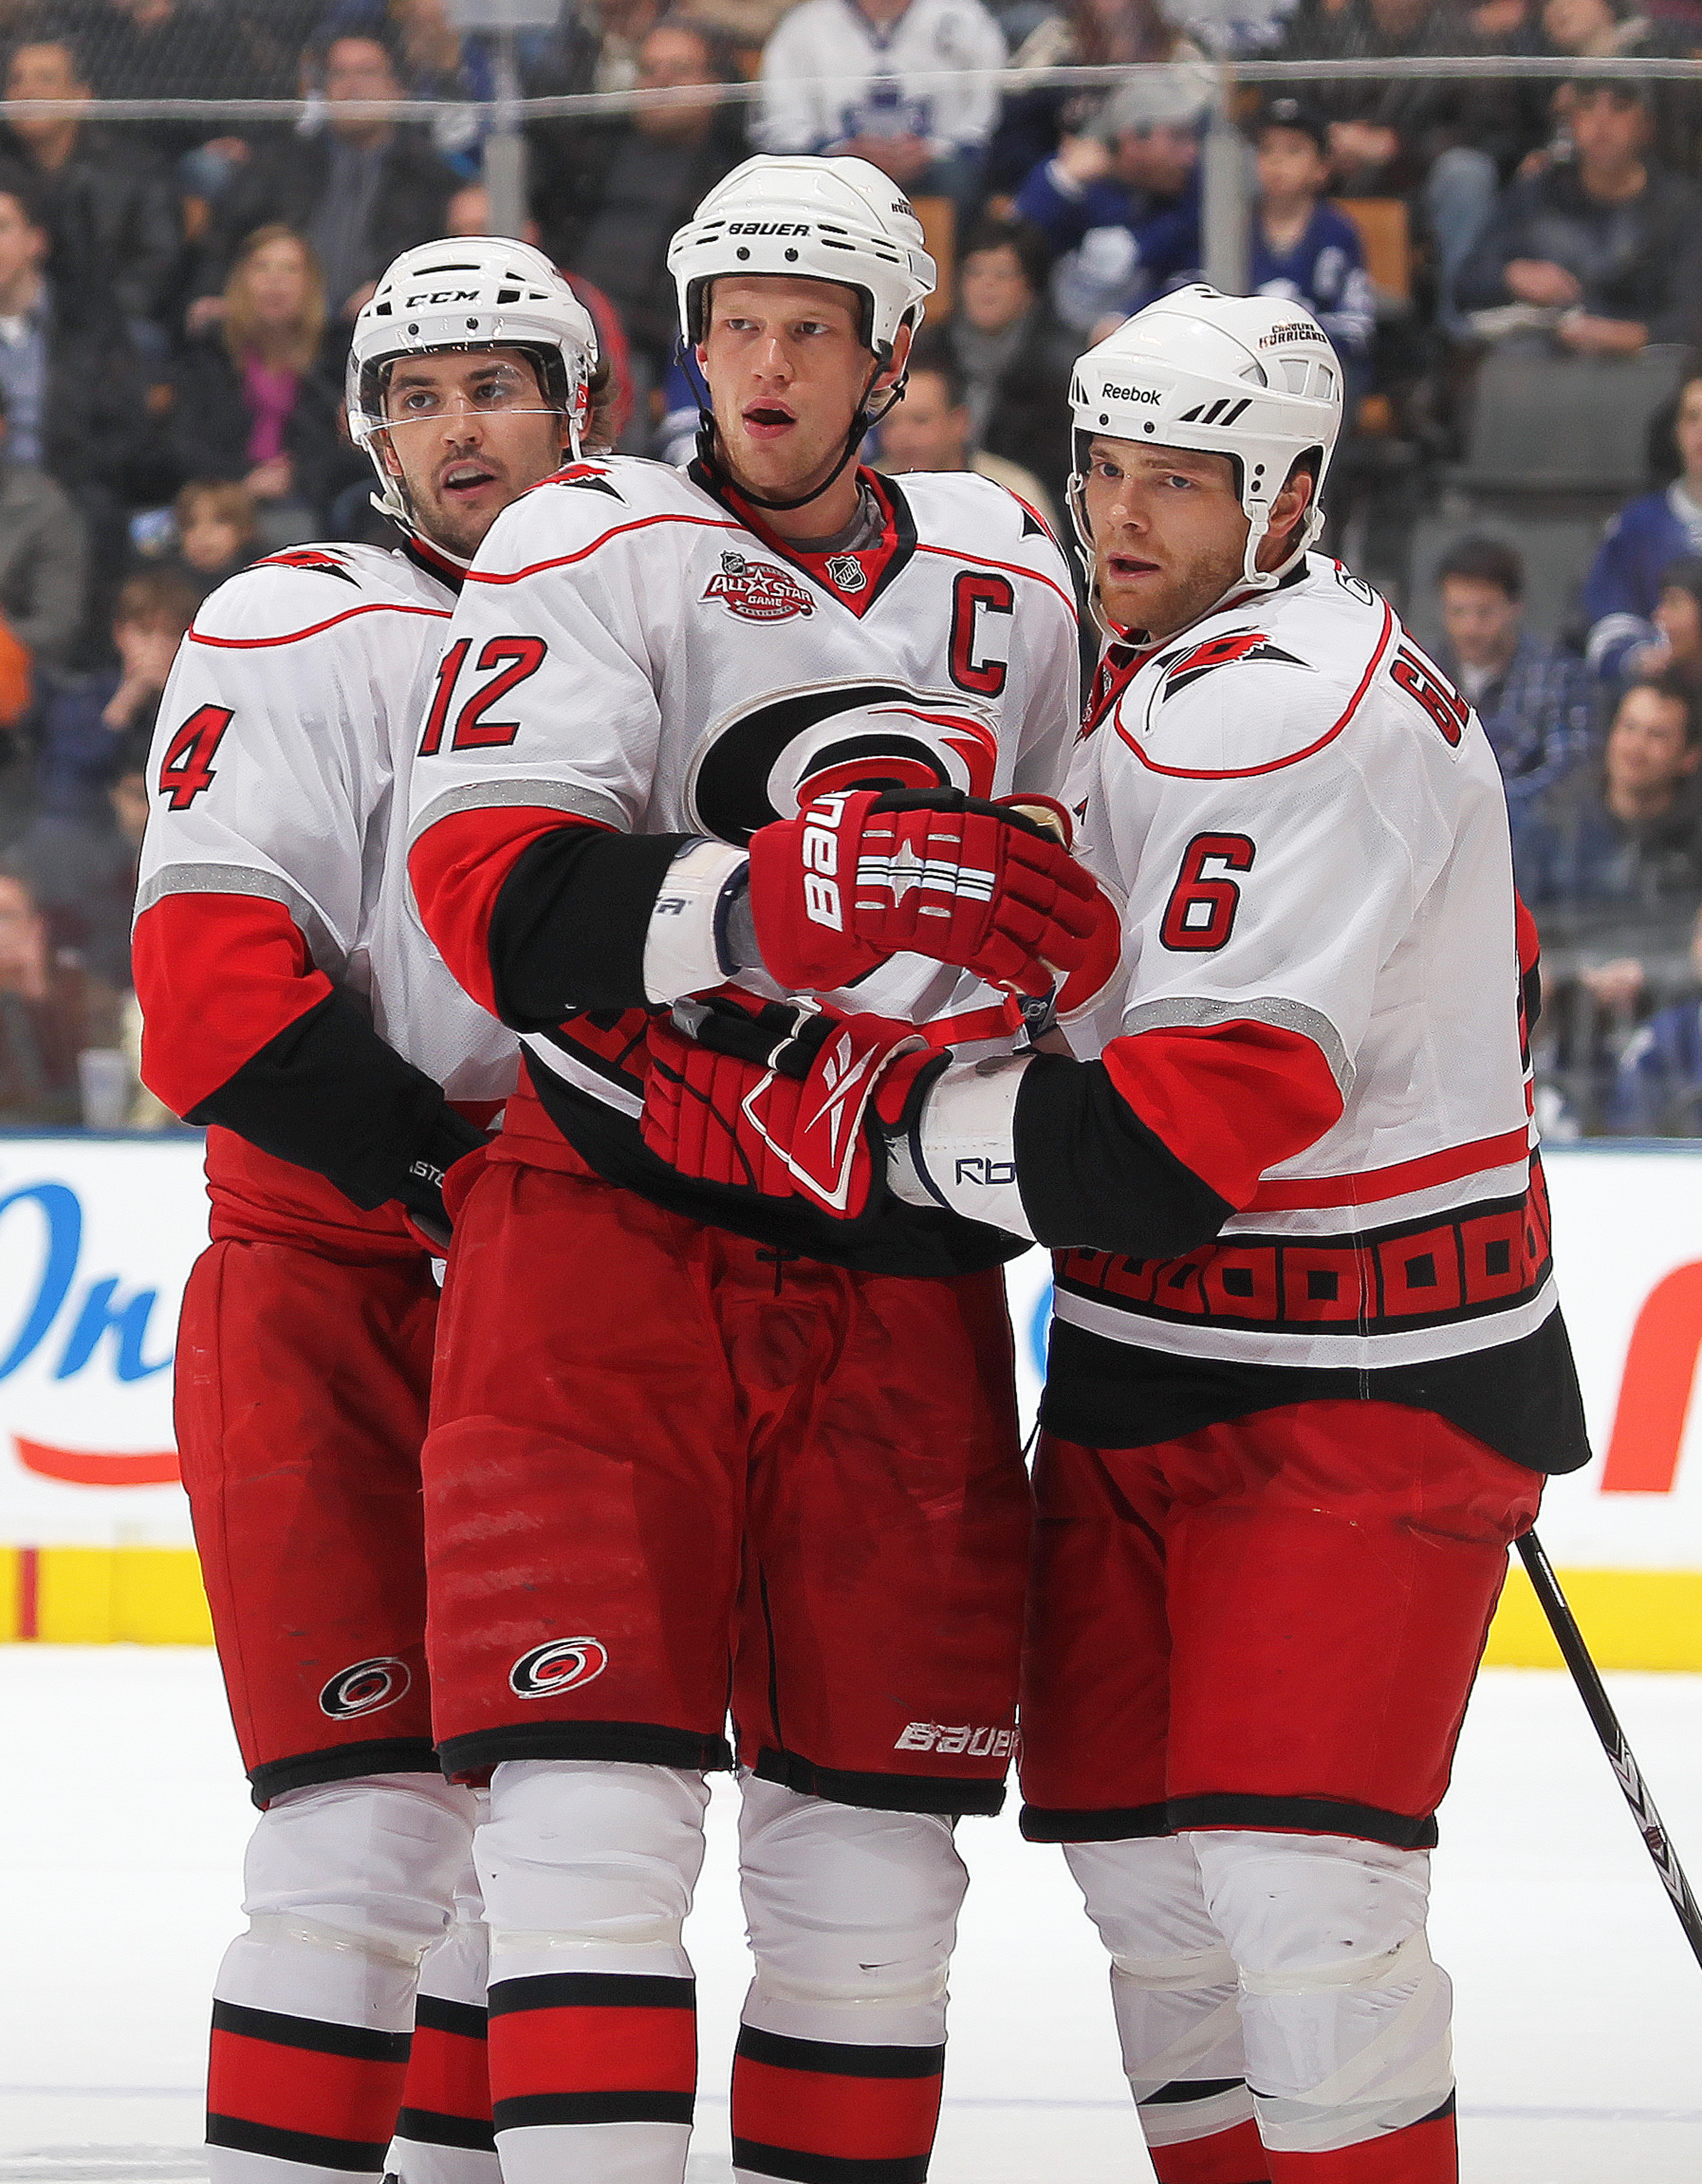 TORONTO,ON - DECEMBER 28:  Eric Staal #12 of the Carolina Hurricanes receives congratulations from his teammates after scoring his second goal in a game against the Toronto Maple Leafs on December 28, 2010 at the Air Canada Centre in Toronto, Ontario. (Ph